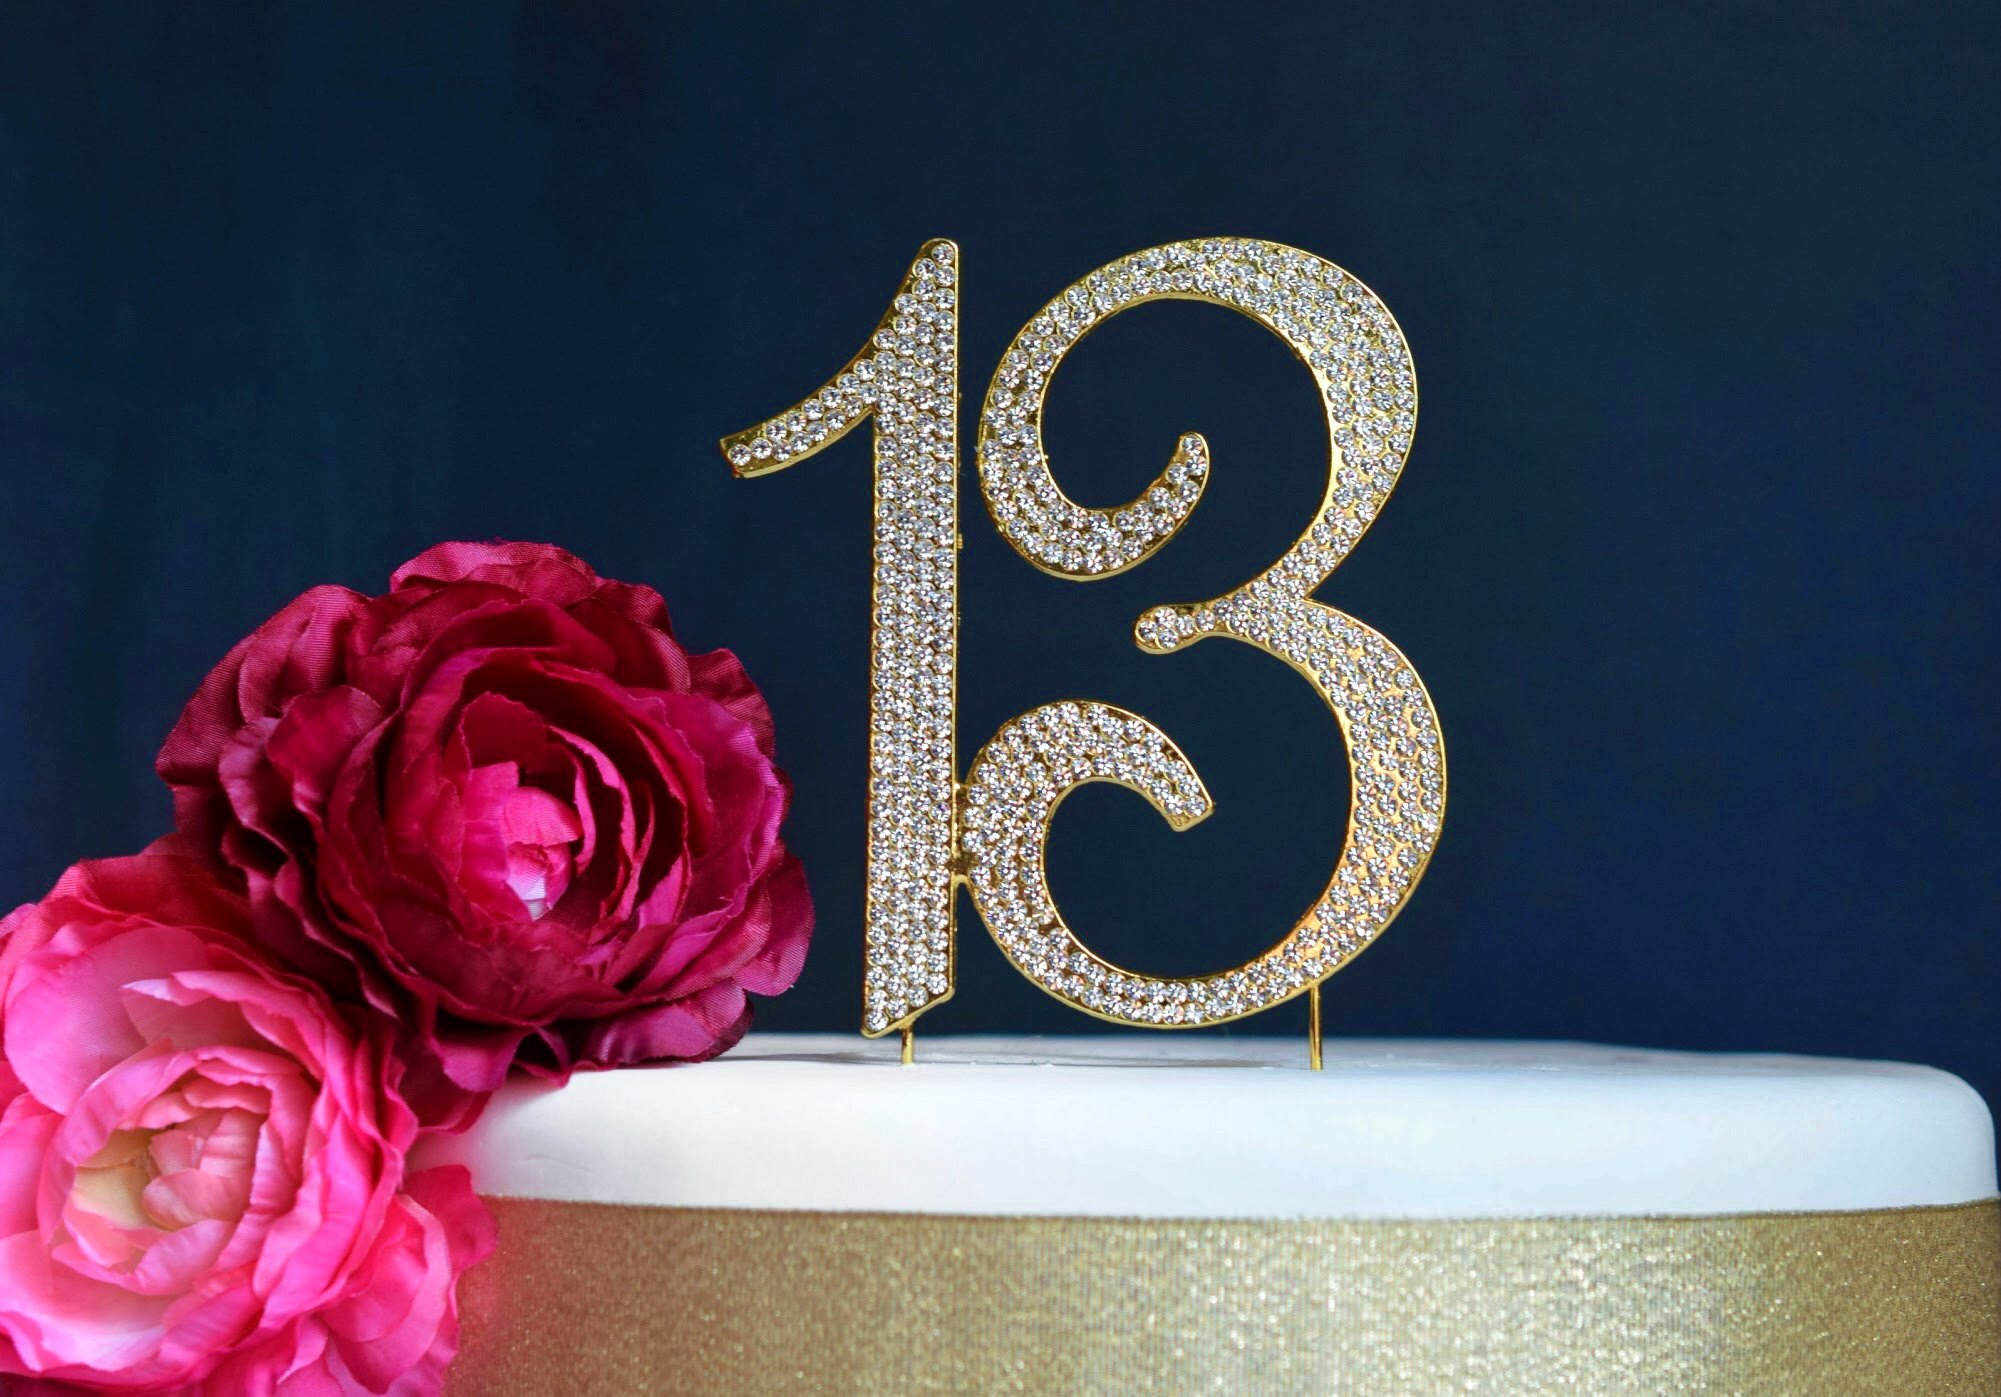 13 GOLD Cake Topper | Premium Sparkly Crystal Rhinestones | 13th Birthday or Anniversary Party Decoration Ideas | Quality Metal Alloy | Perfect Keepsake (13 Gold)